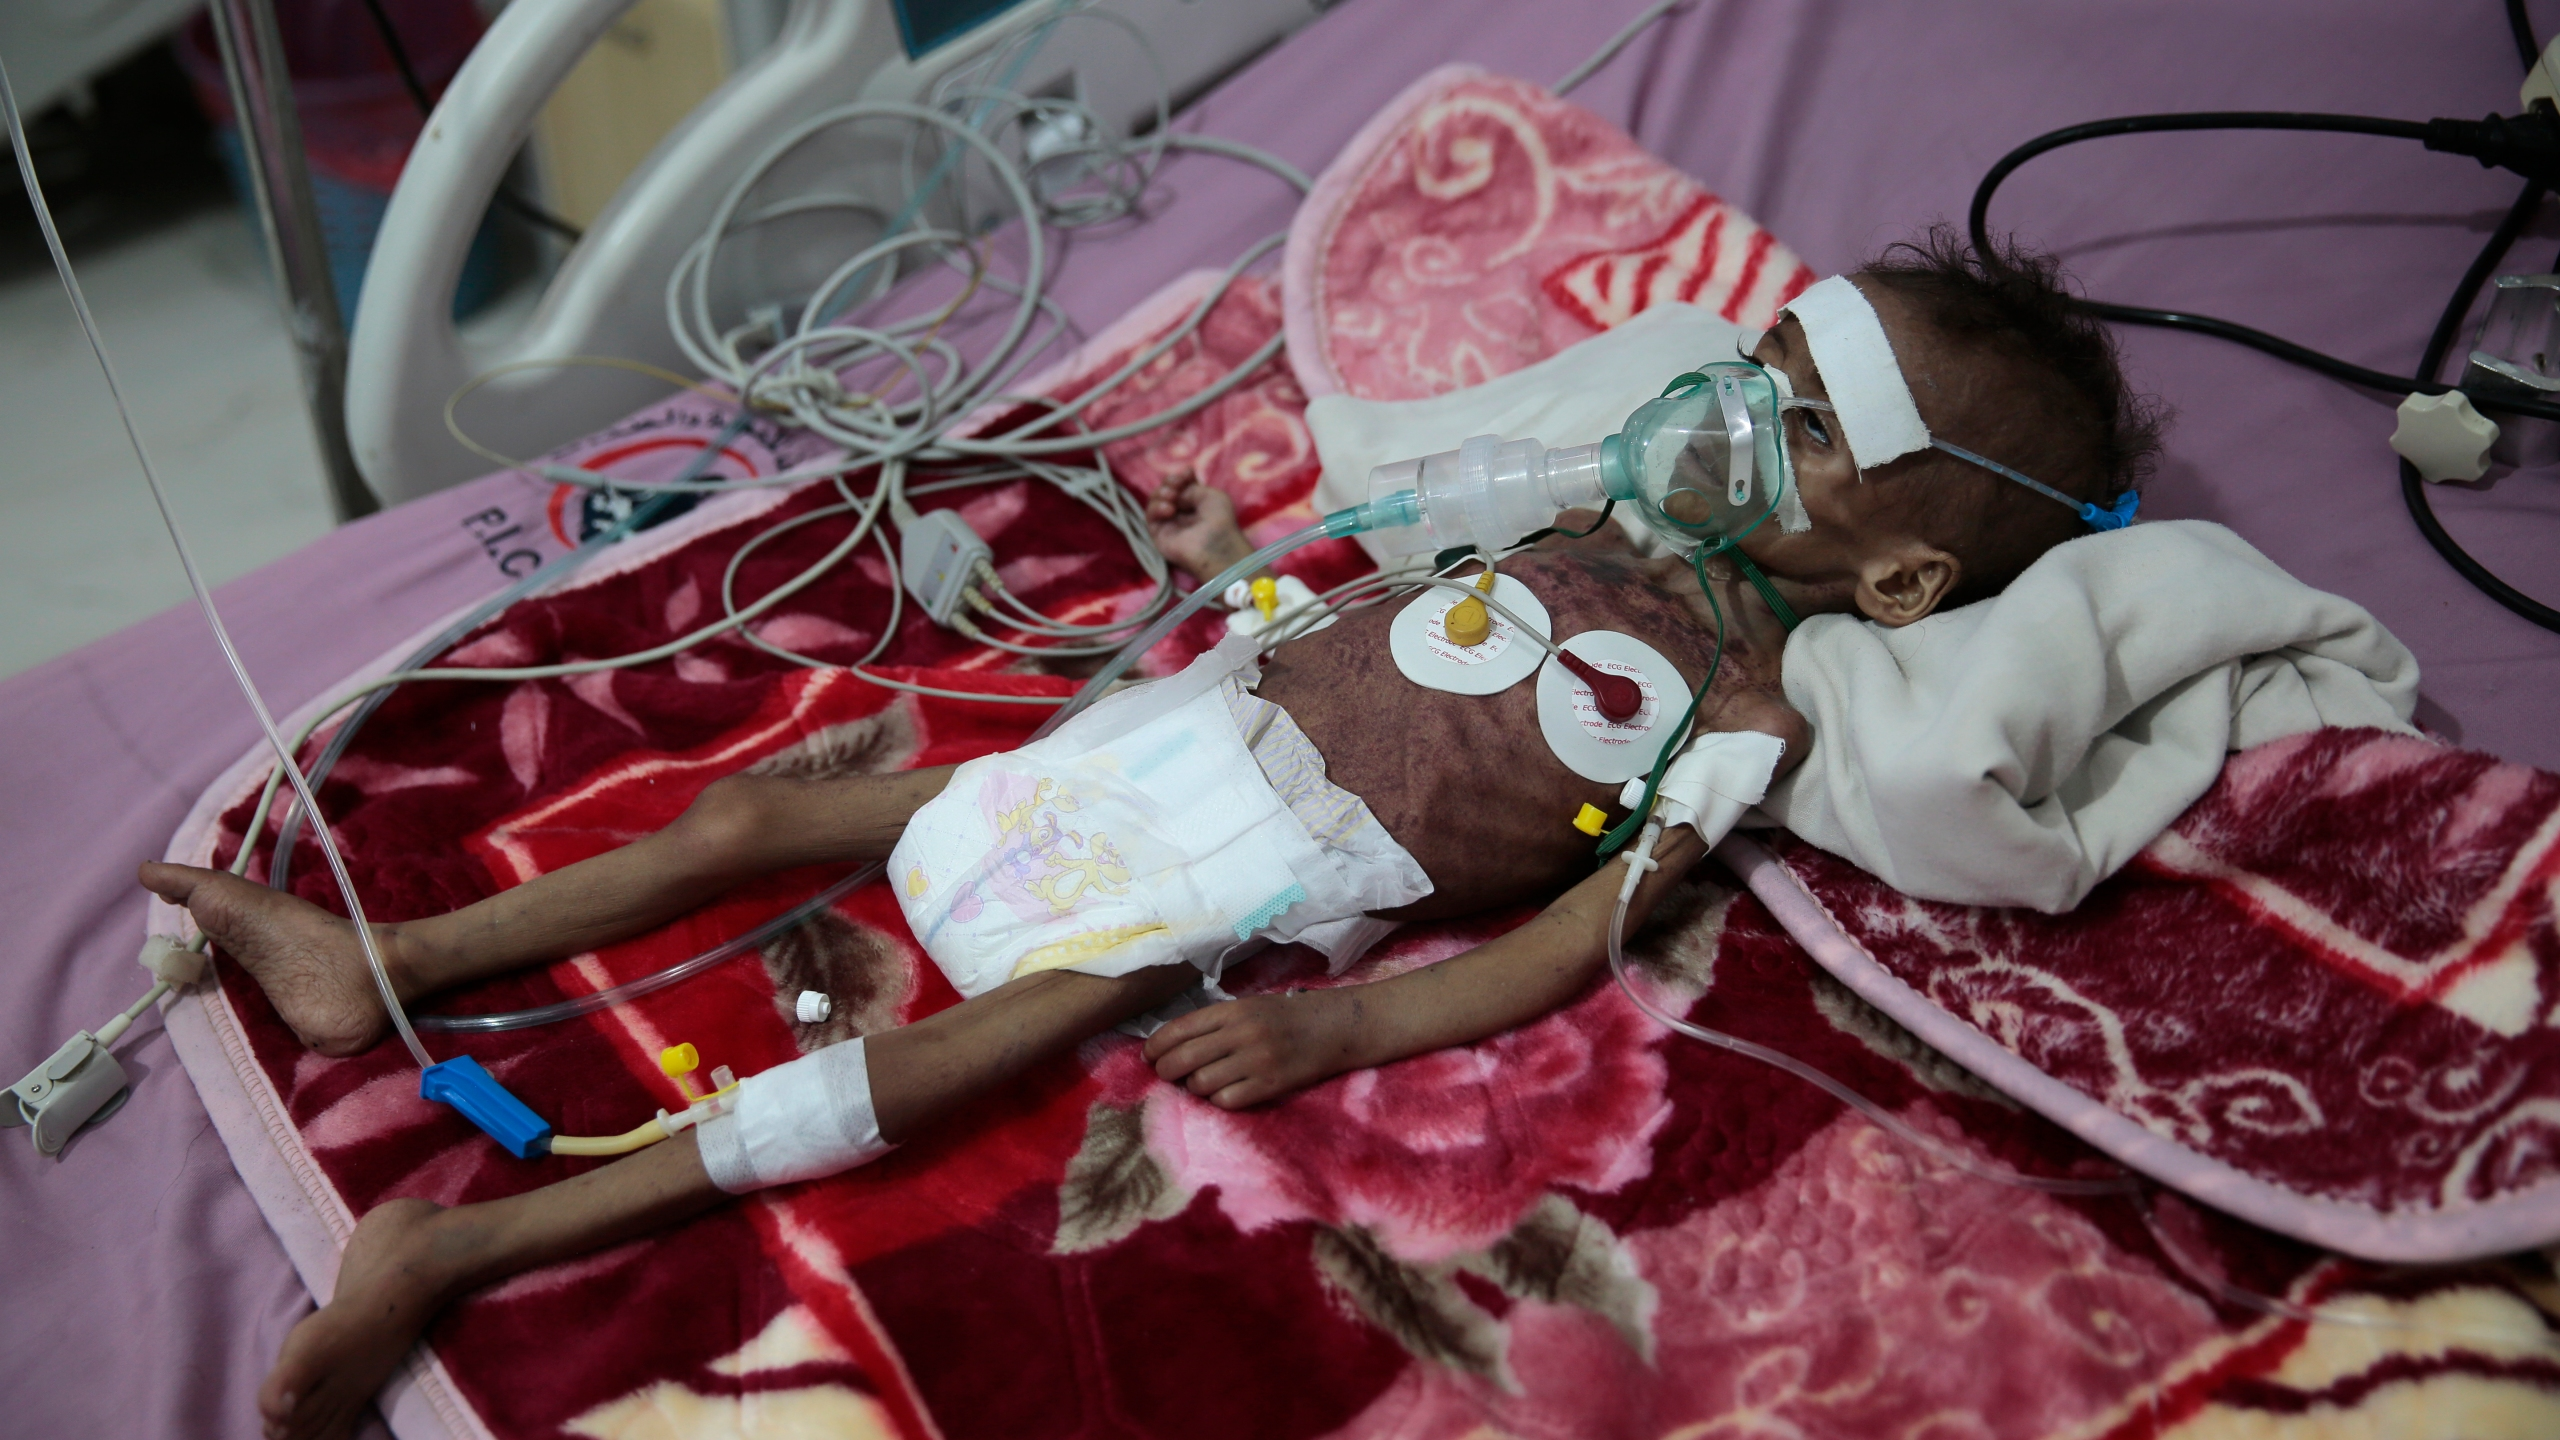 A malnourished girl Rahmah Watheeq receives treatment at a feeding center at Al-Sabeen hospital in Sanaa, Yemen, Tuesday. Nov. 3, 2020. (Hani Mohammed/AP Photo)